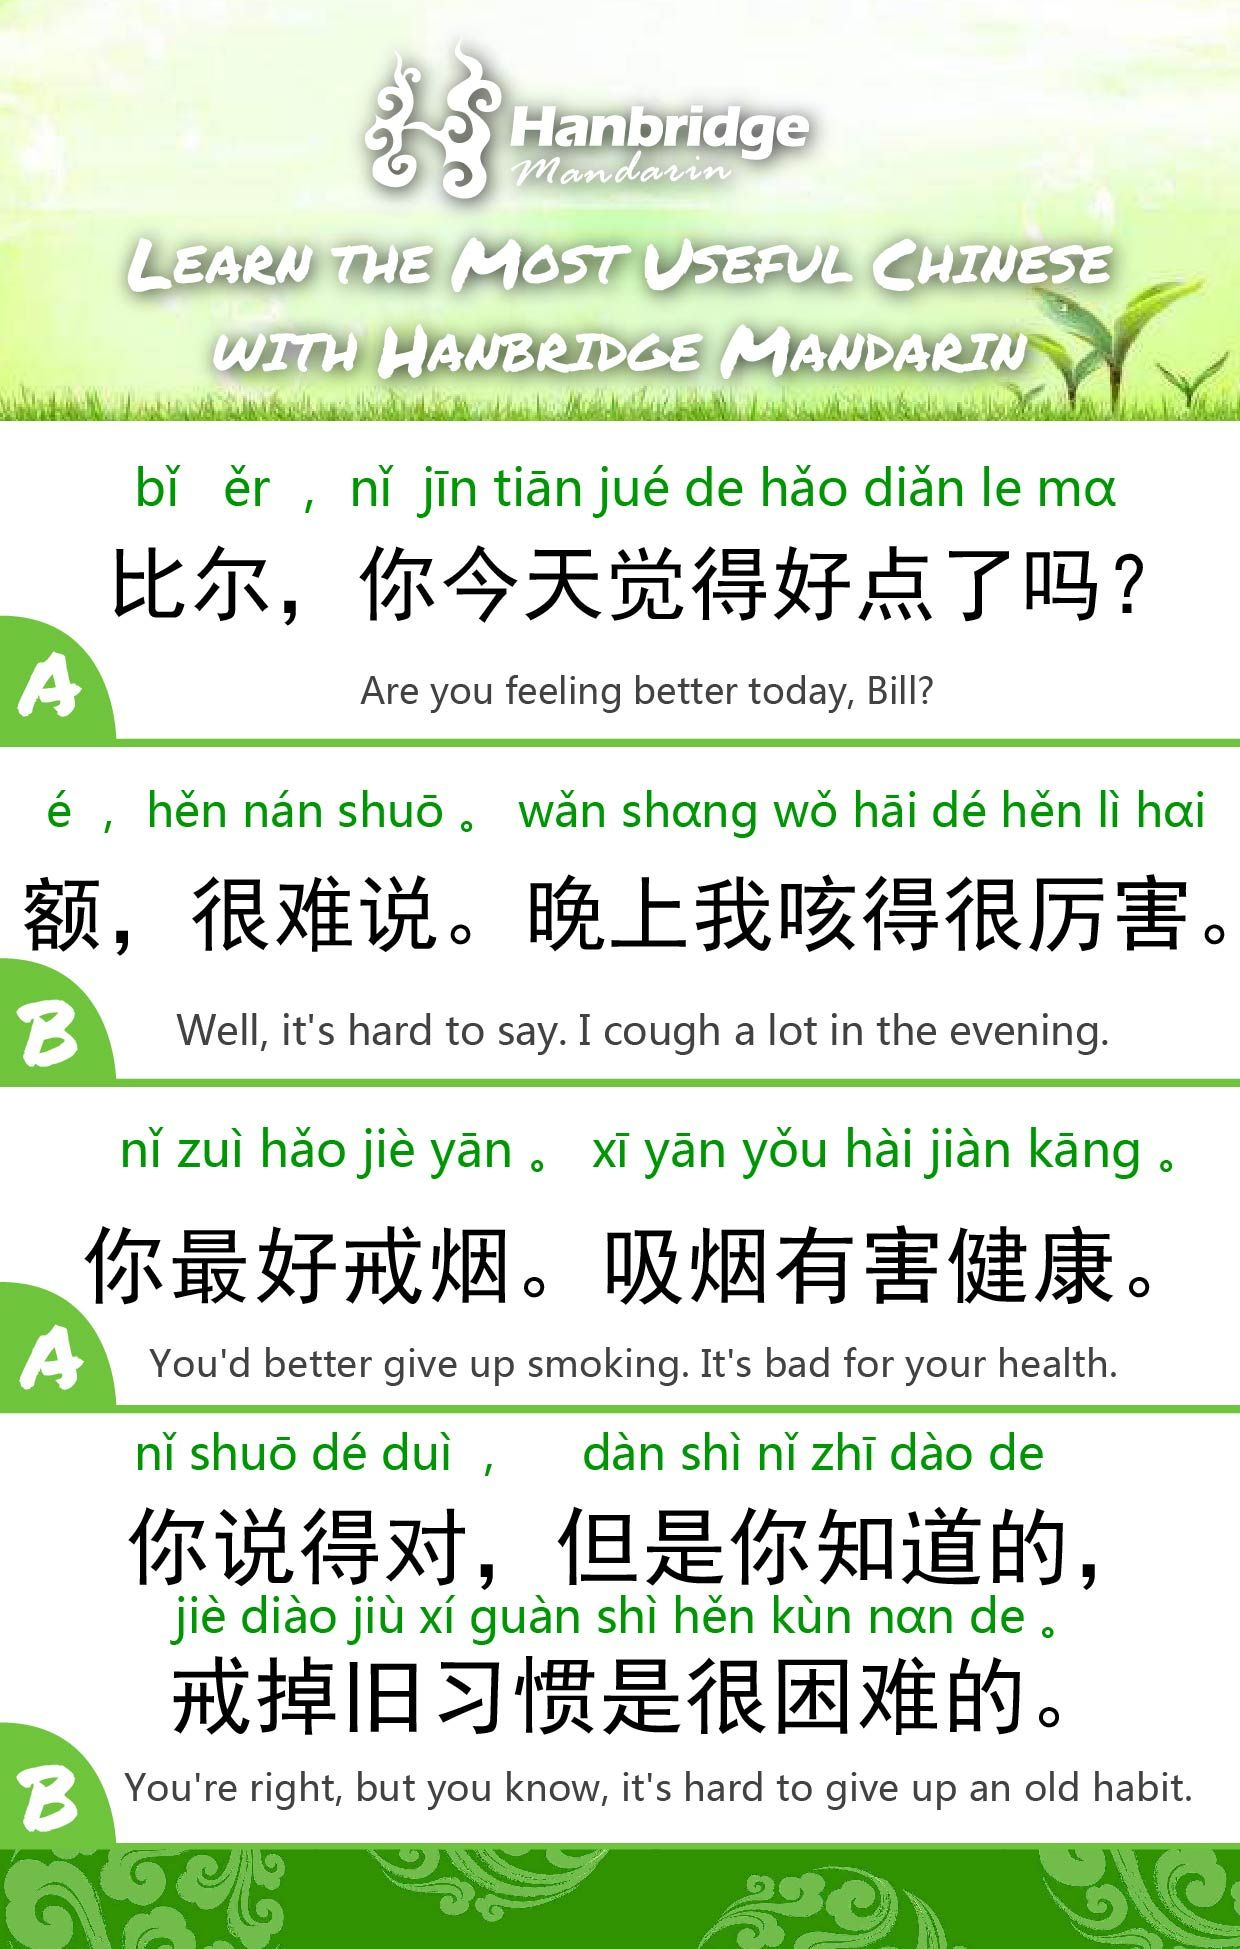 learn daily Chinese phrases with us   Chinese phrases, Chinese language learning, Mandarin chinese learning